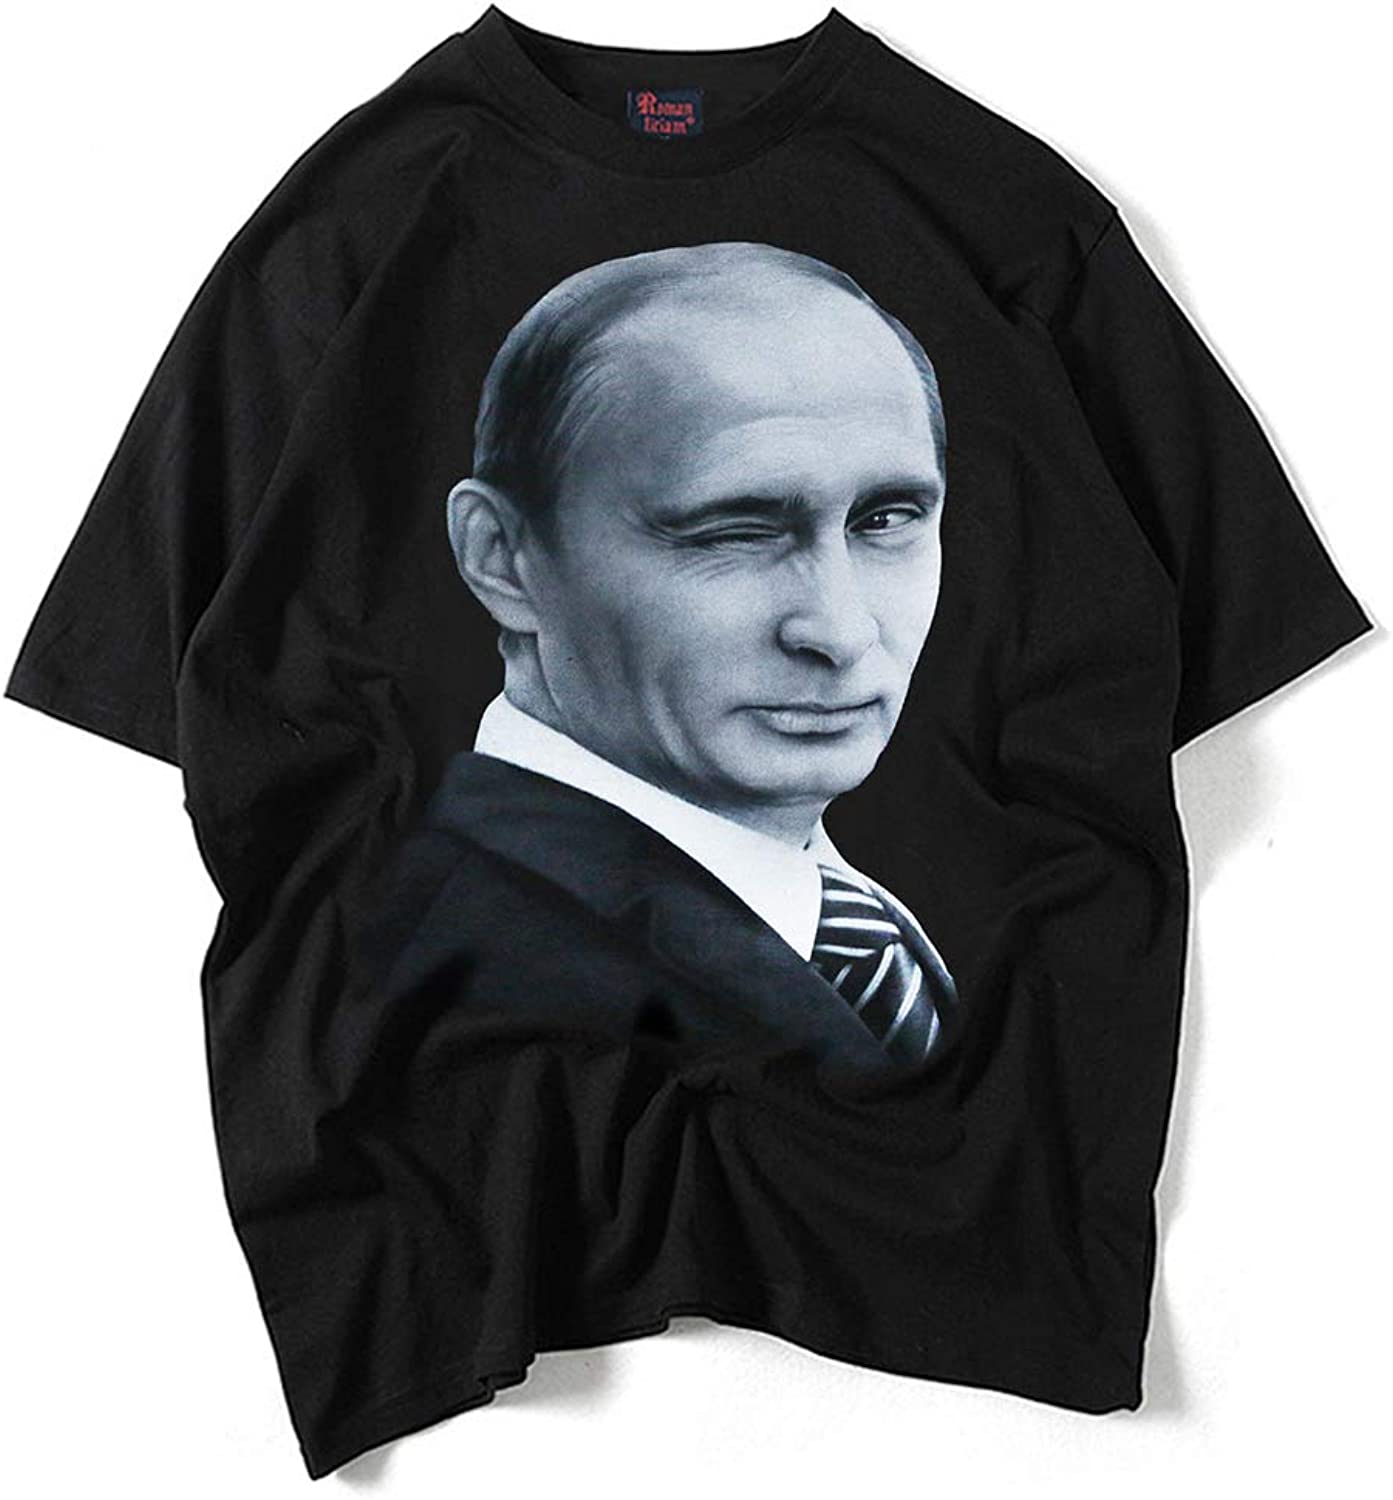 Short Sleeve T-Shirt Round Neck Simple Comfort Unisex Casual Style Fashion Personality Clothing,Winking-Putin,XL